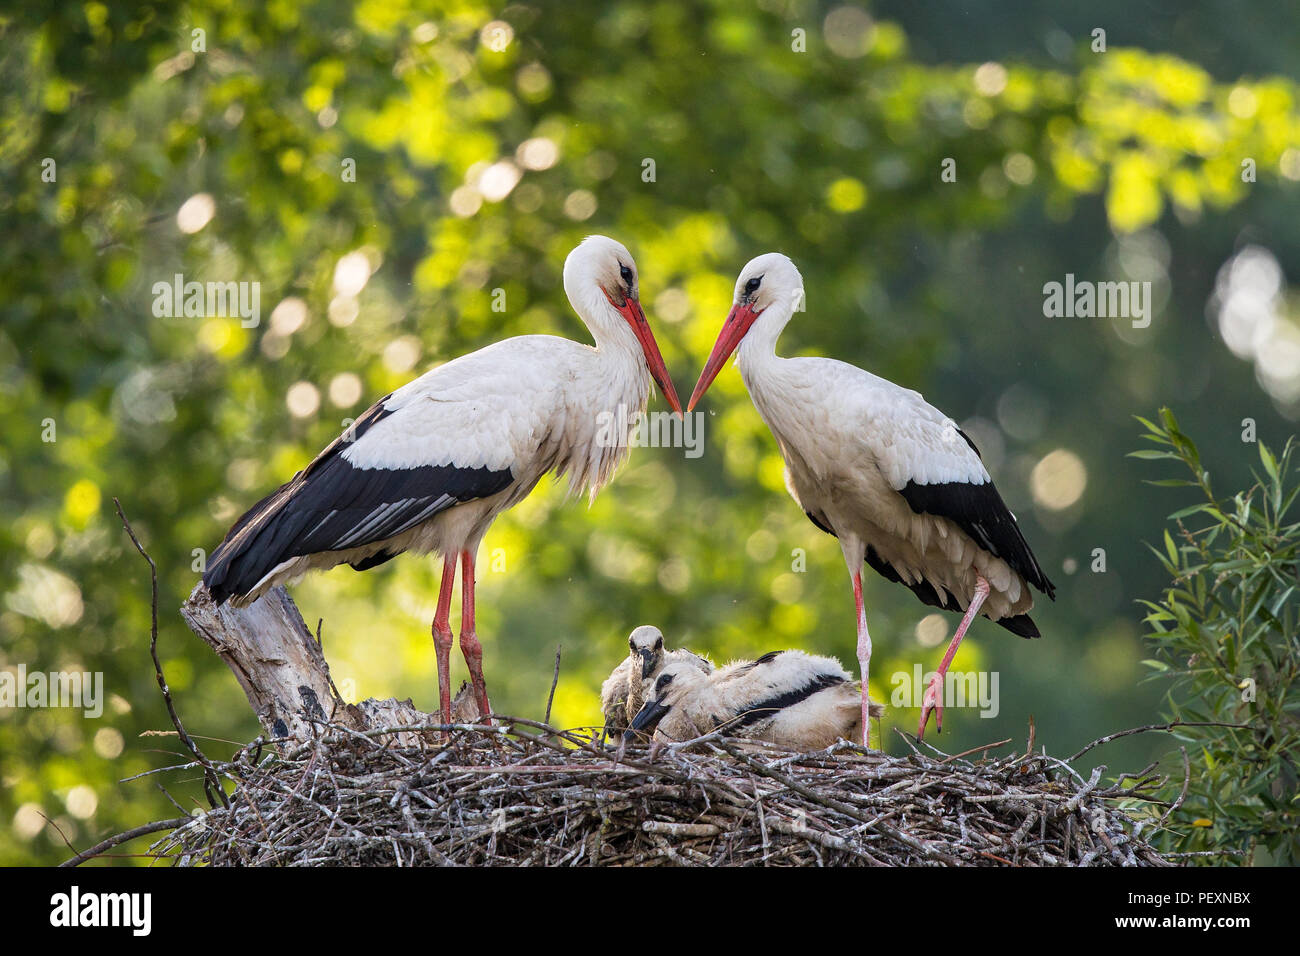 White Stork (Ciconia ciconia) pair on nest with chicks, Baden-Wuerttemberg, Germany - Stock Image